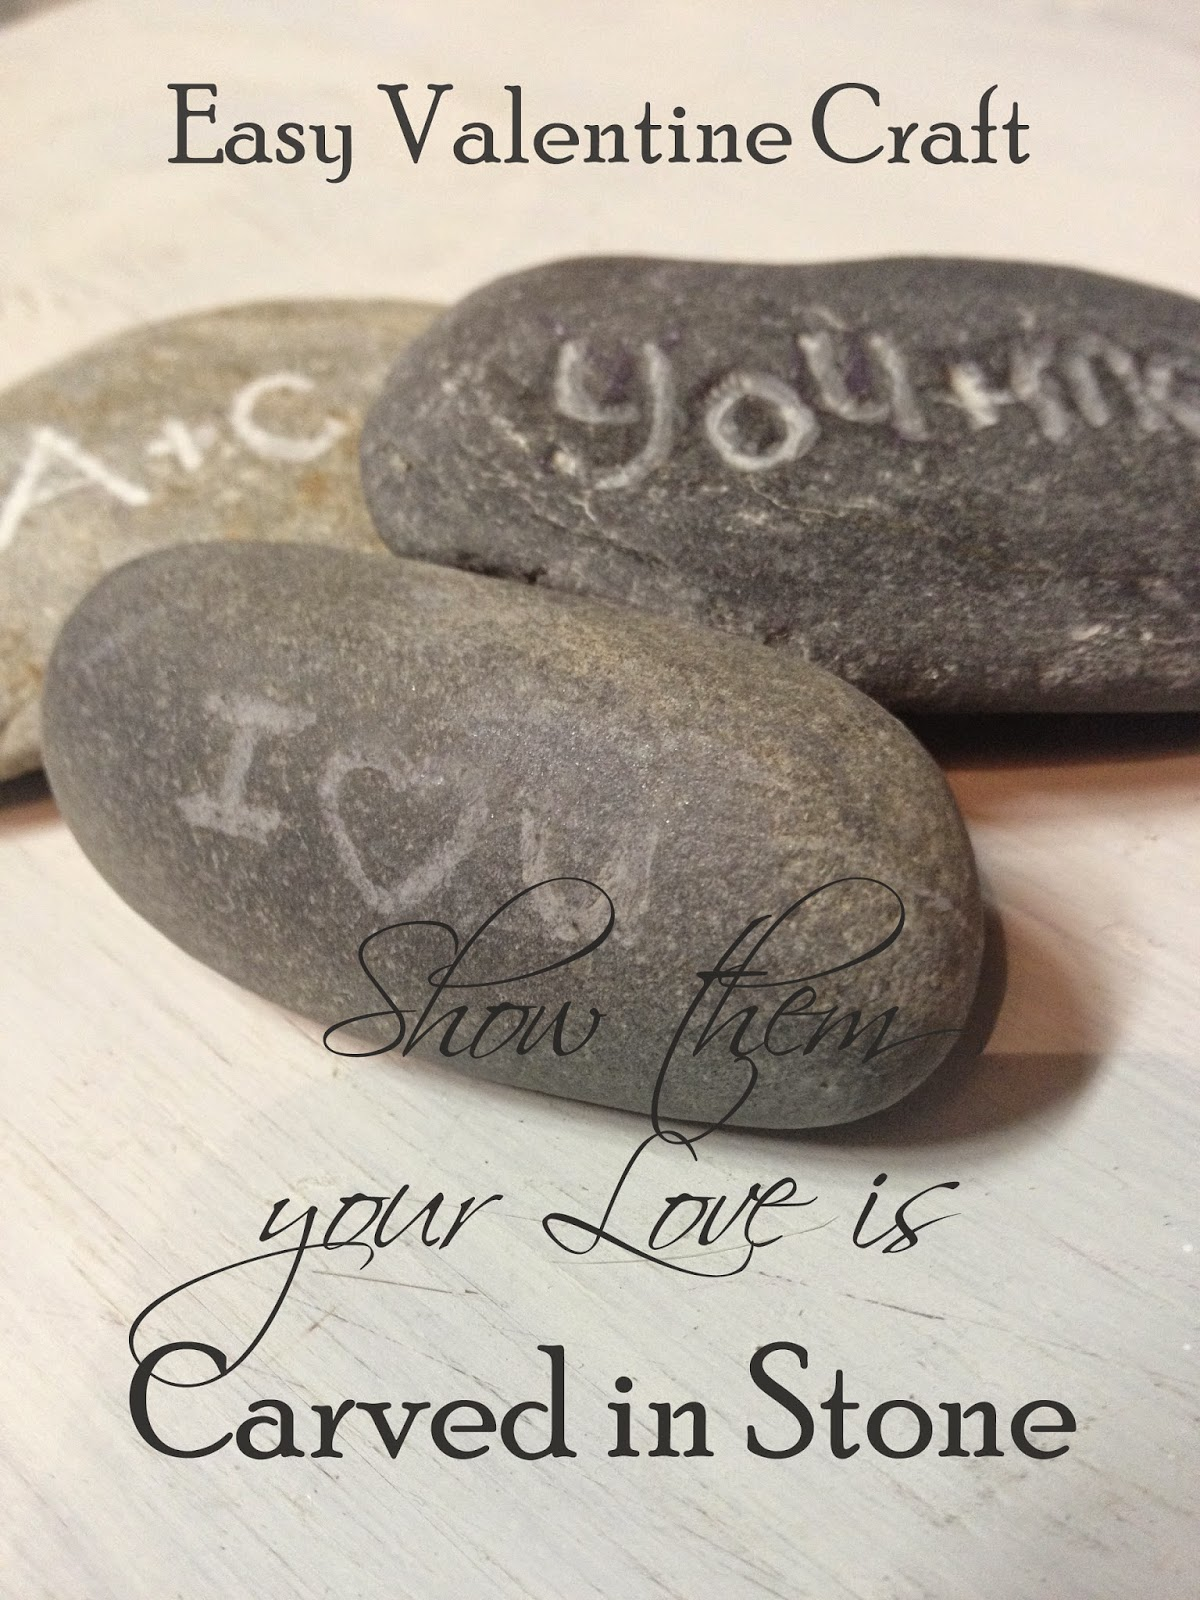 Easy Valentine Craft, carved stone, the altered past blog